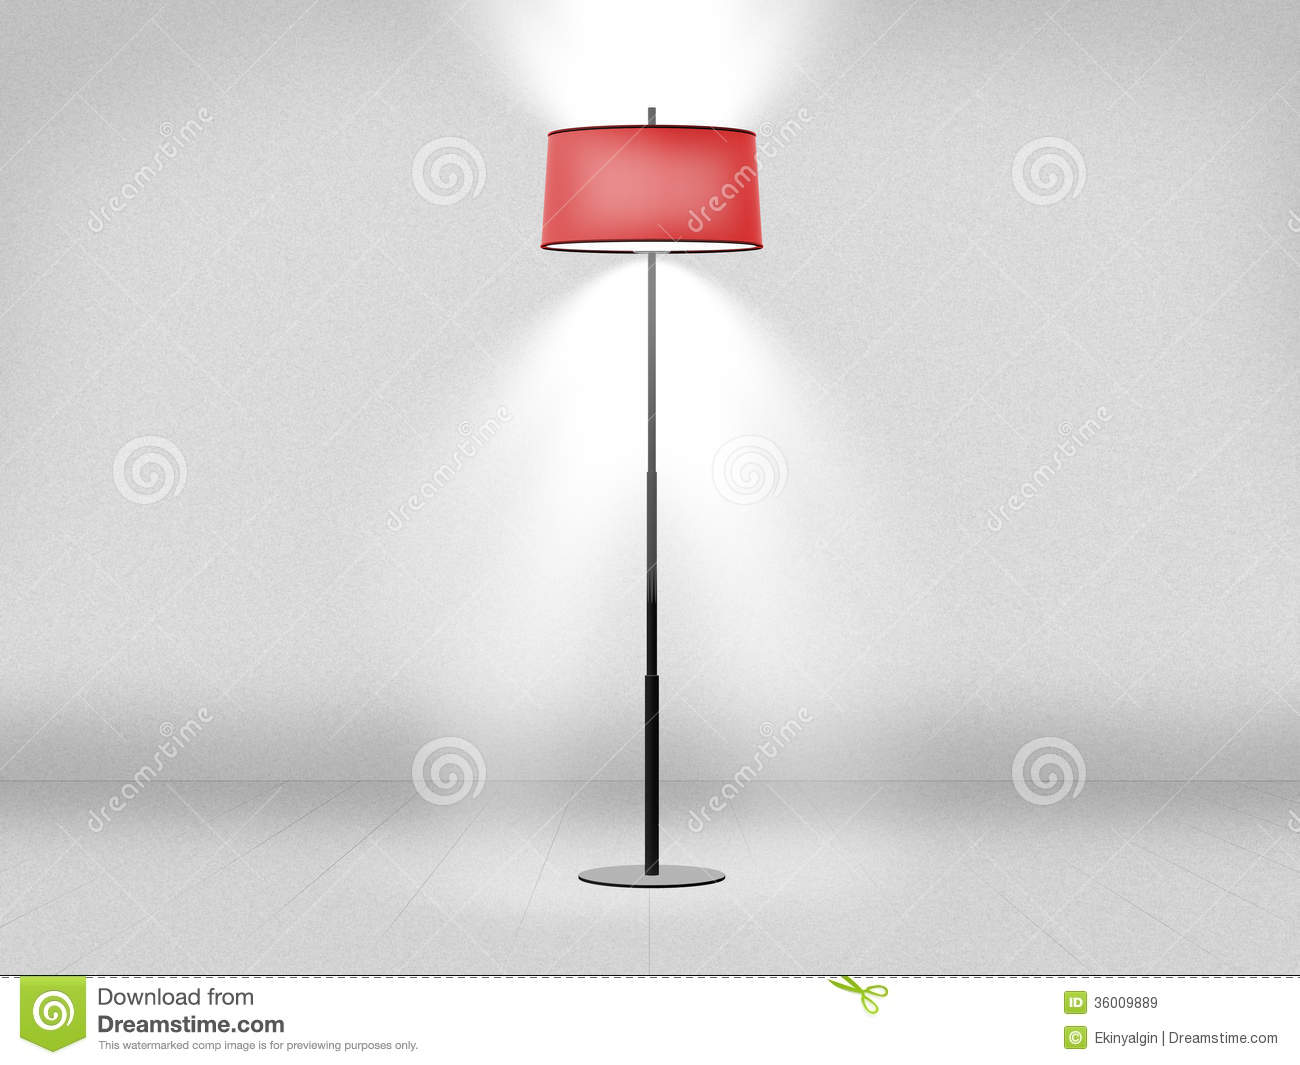 Floor lamp against blank empty white wall.